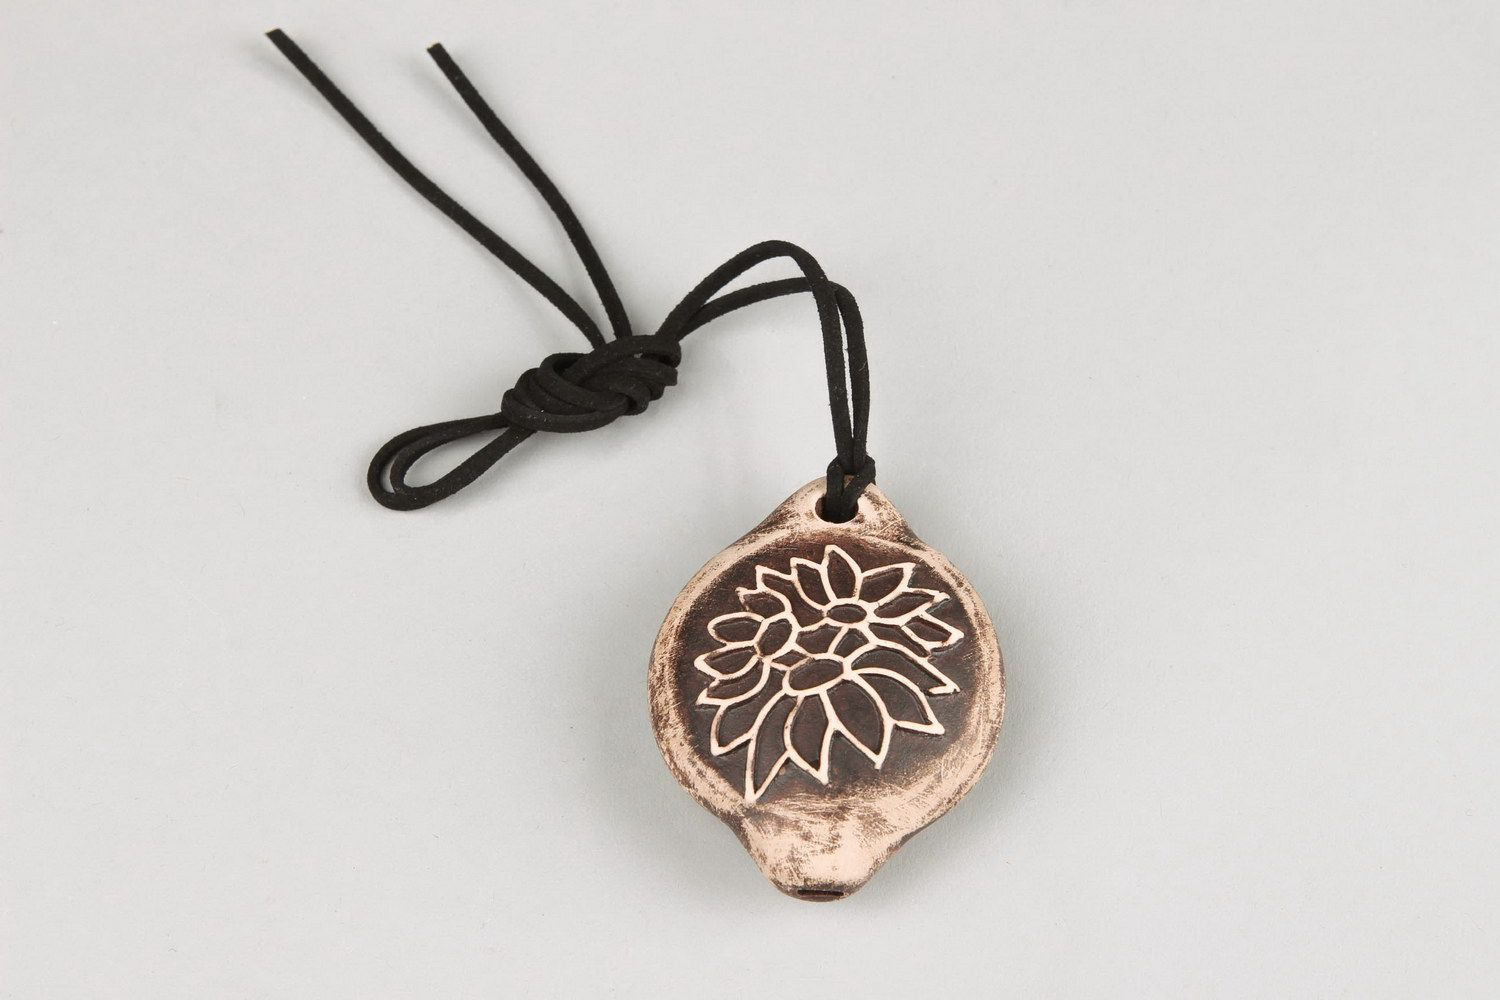 Tin whistle pendant made of clay with carving photo 1